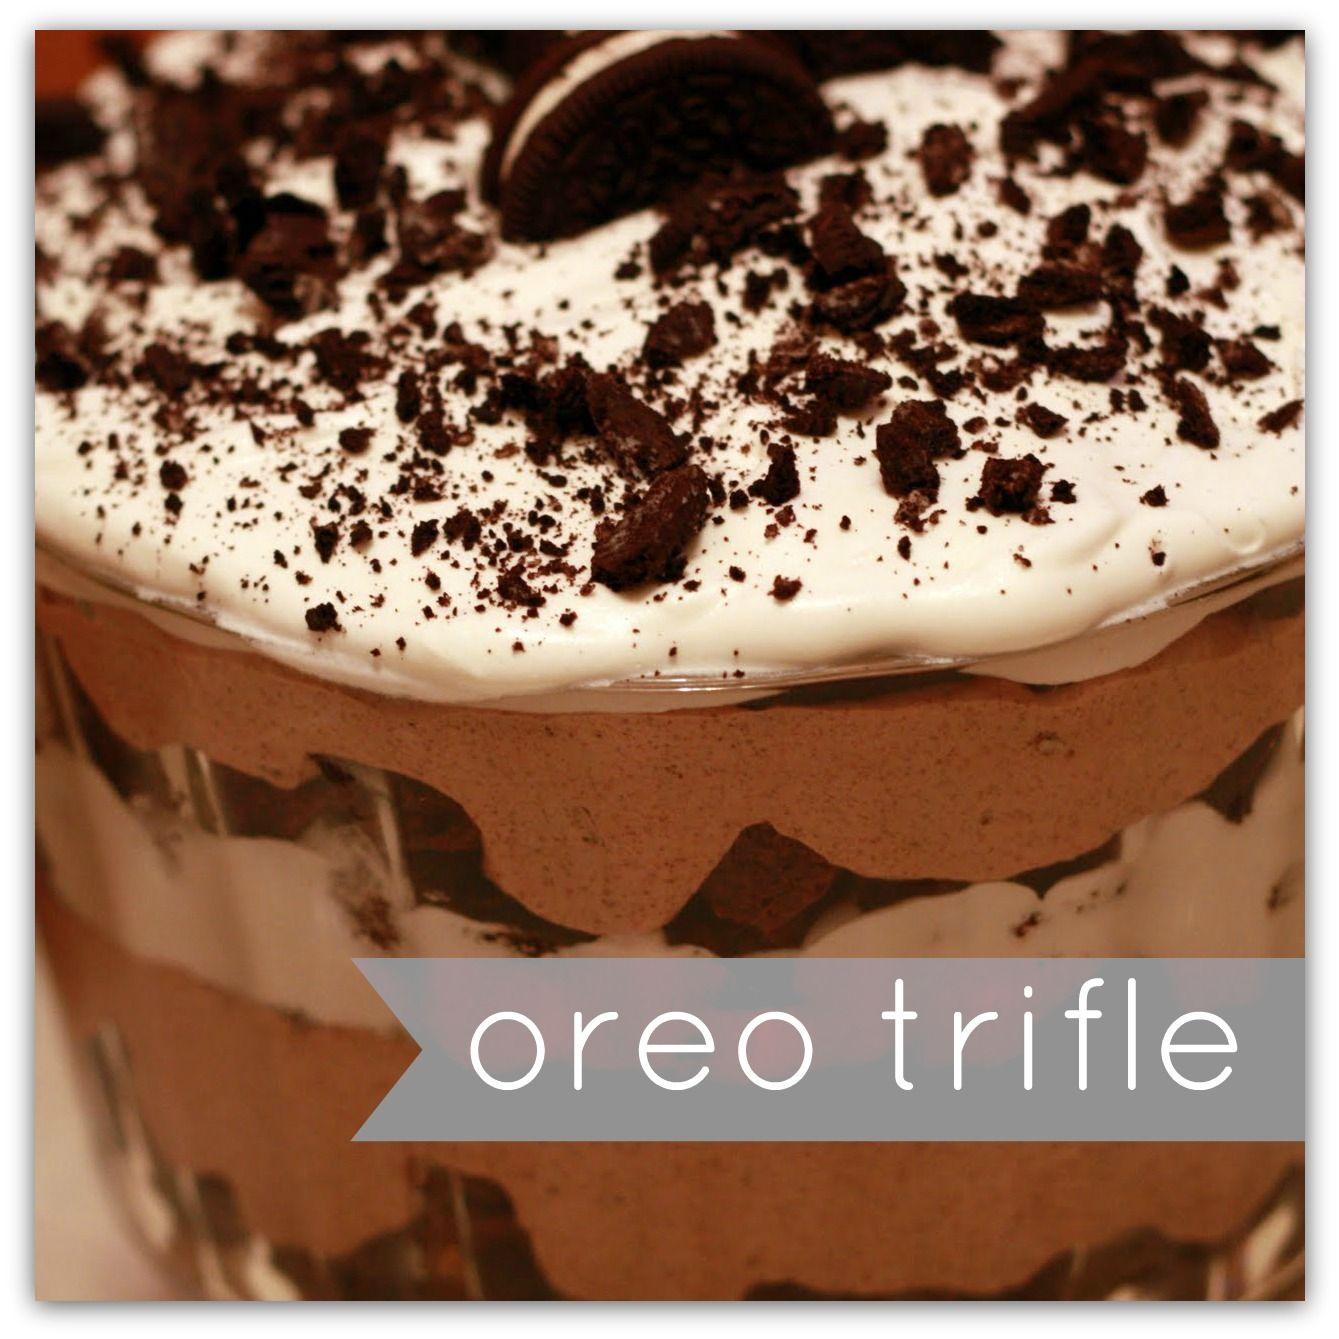 Best Cake To Use For Trifle